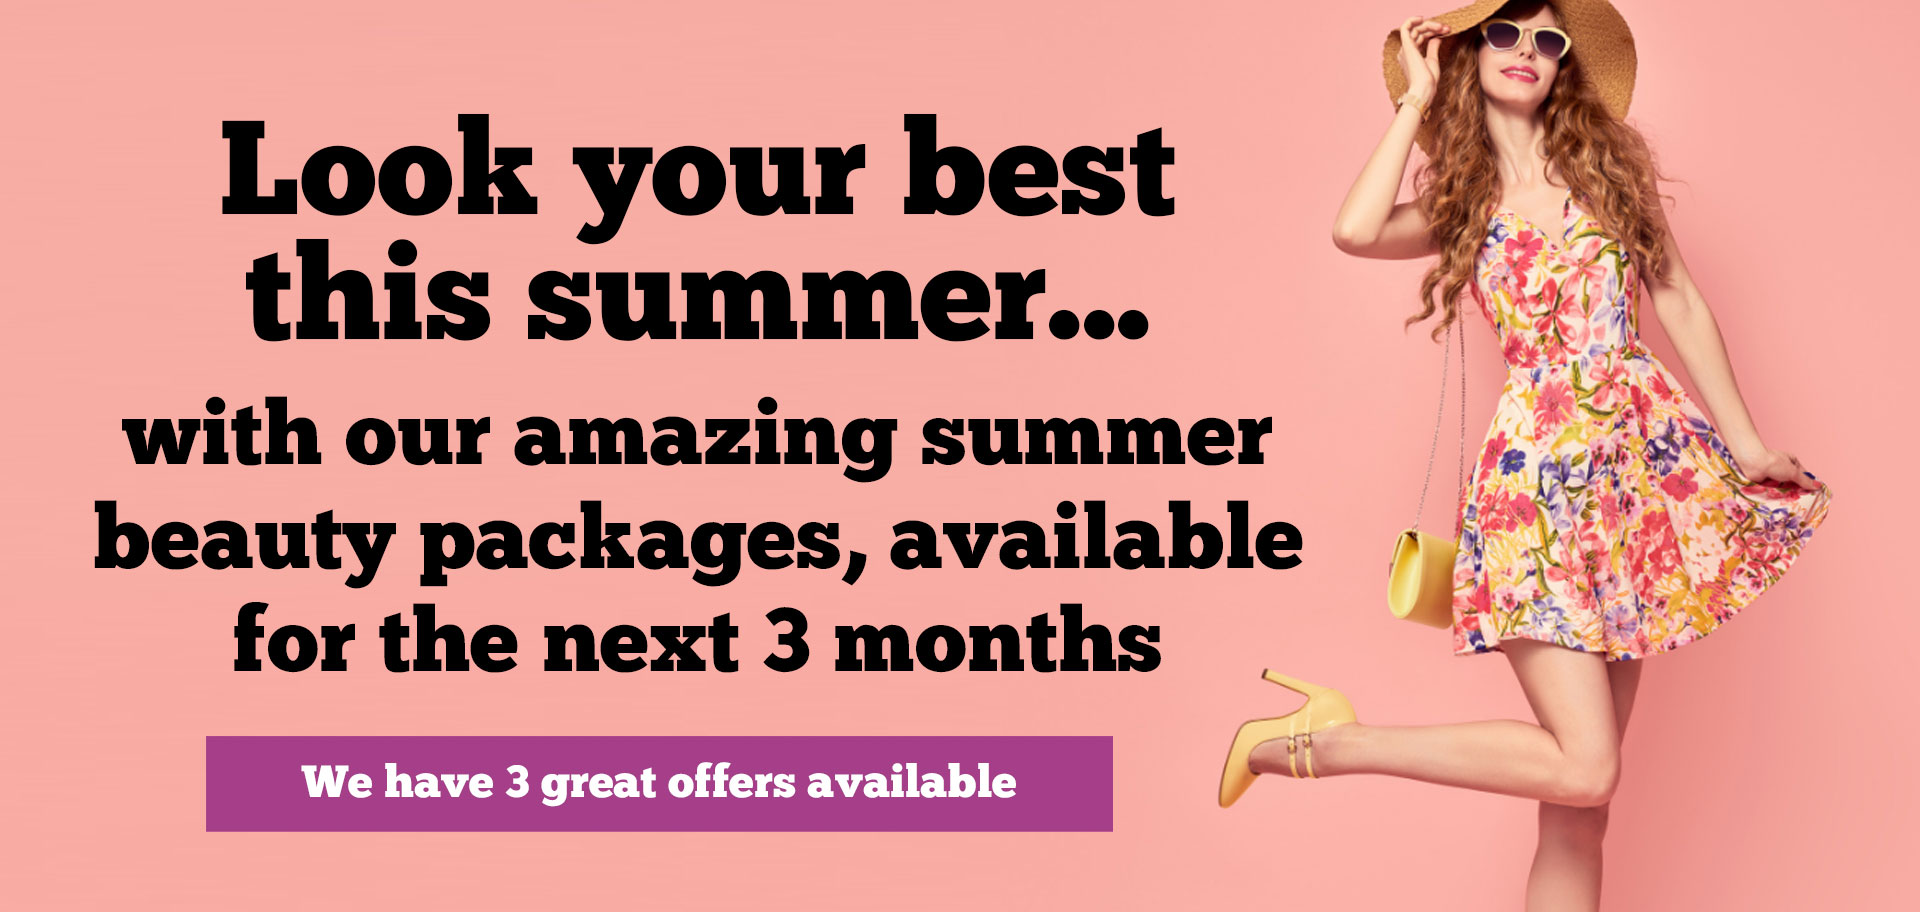 Look your best this summer with our amazing summer beauty packages available for June, July and August